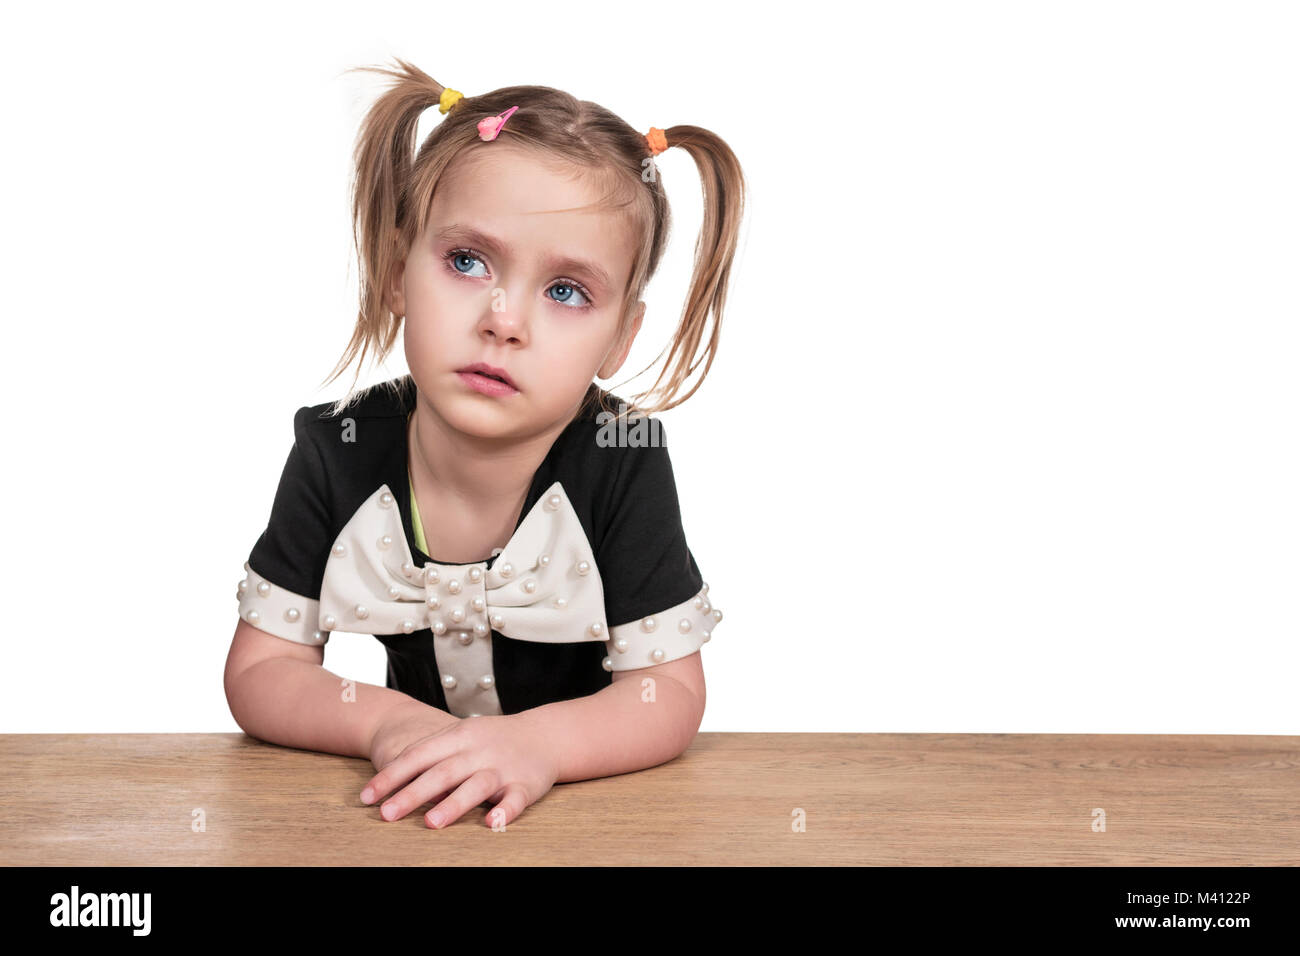 Little beautiful upset girl with tearful eyes sitting at table isolated on white background - Stock Image